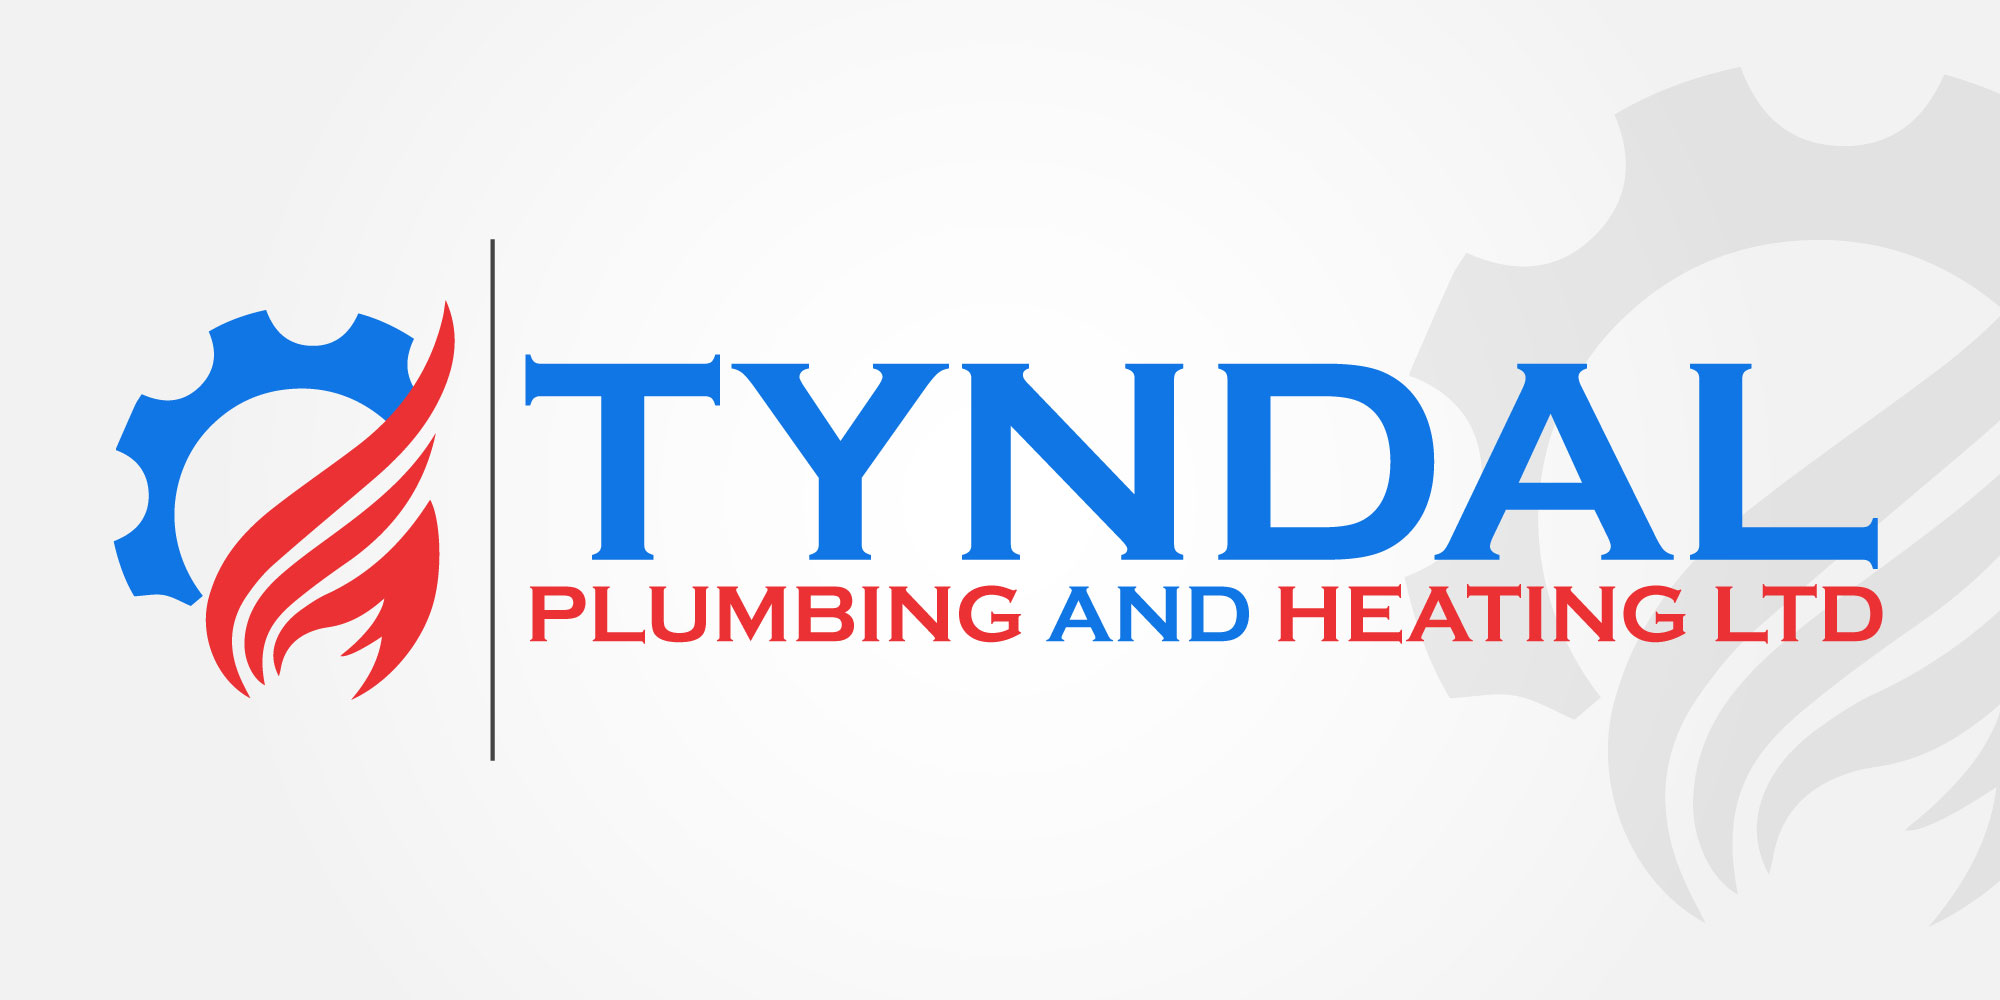 Logo Design by Kamran Khan - Entry No. 121 in the Logo Design Contest Imaginative Logo Design for Tyndall Plumbing & Heating.